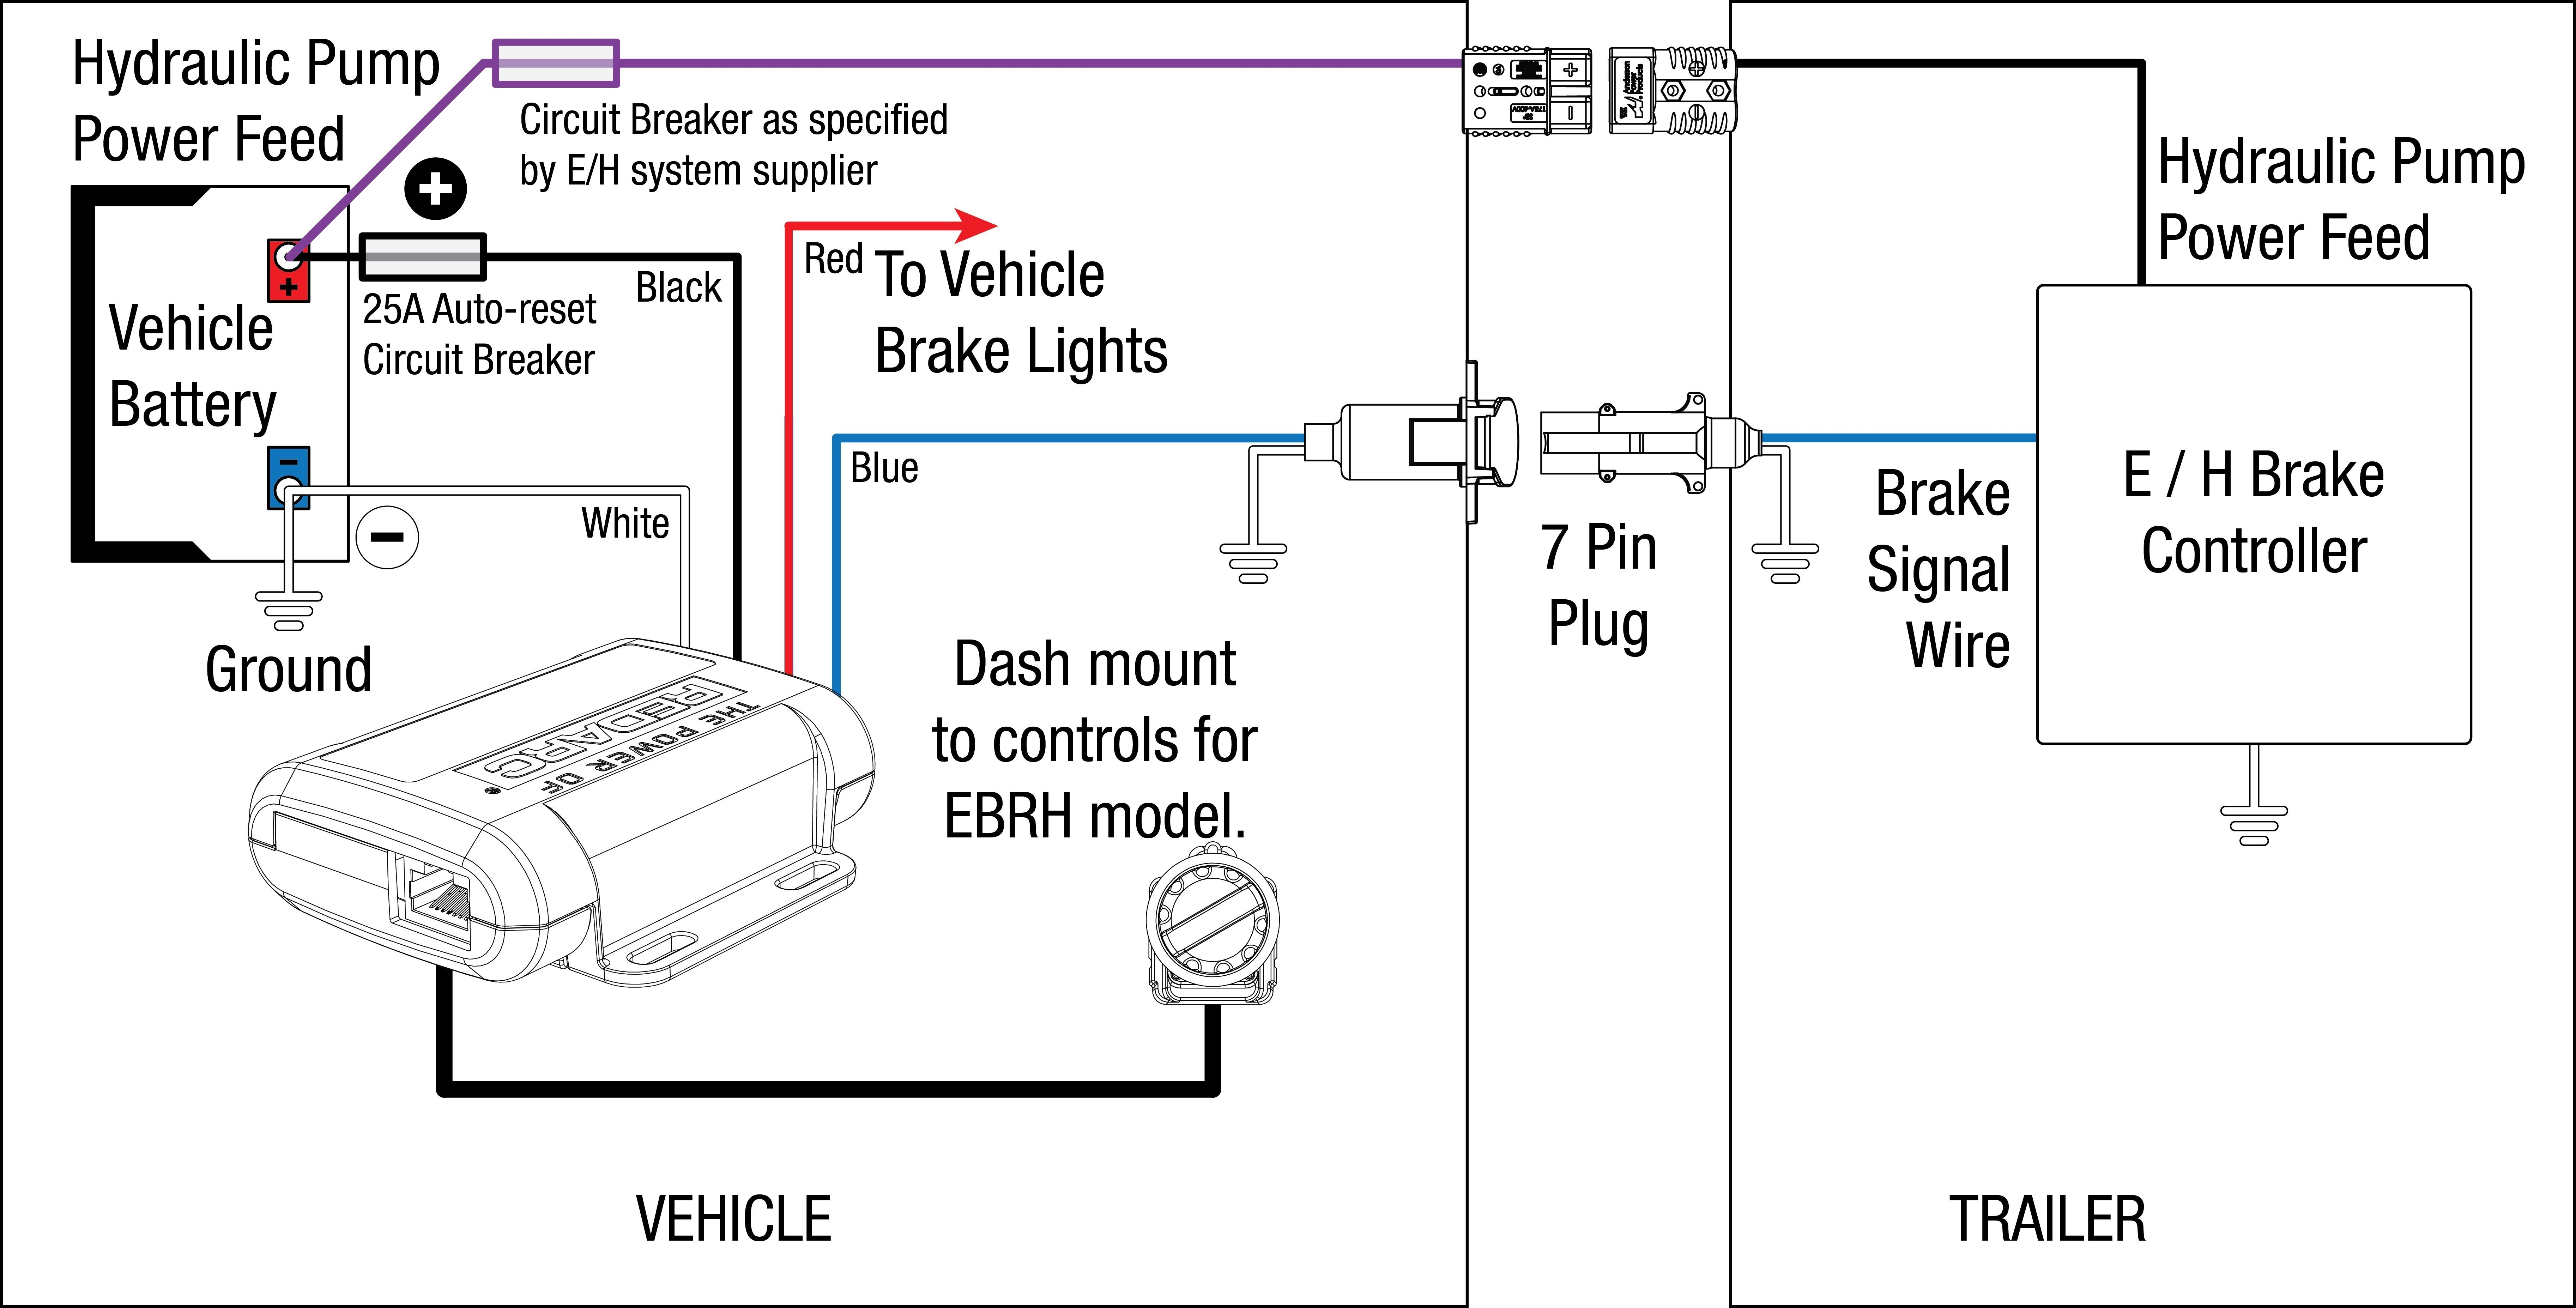 Trailer Breakaway Switch Wiring Diagram Lovely Electric Trailer Brake  Controller Wiring Diagram and Inst 03